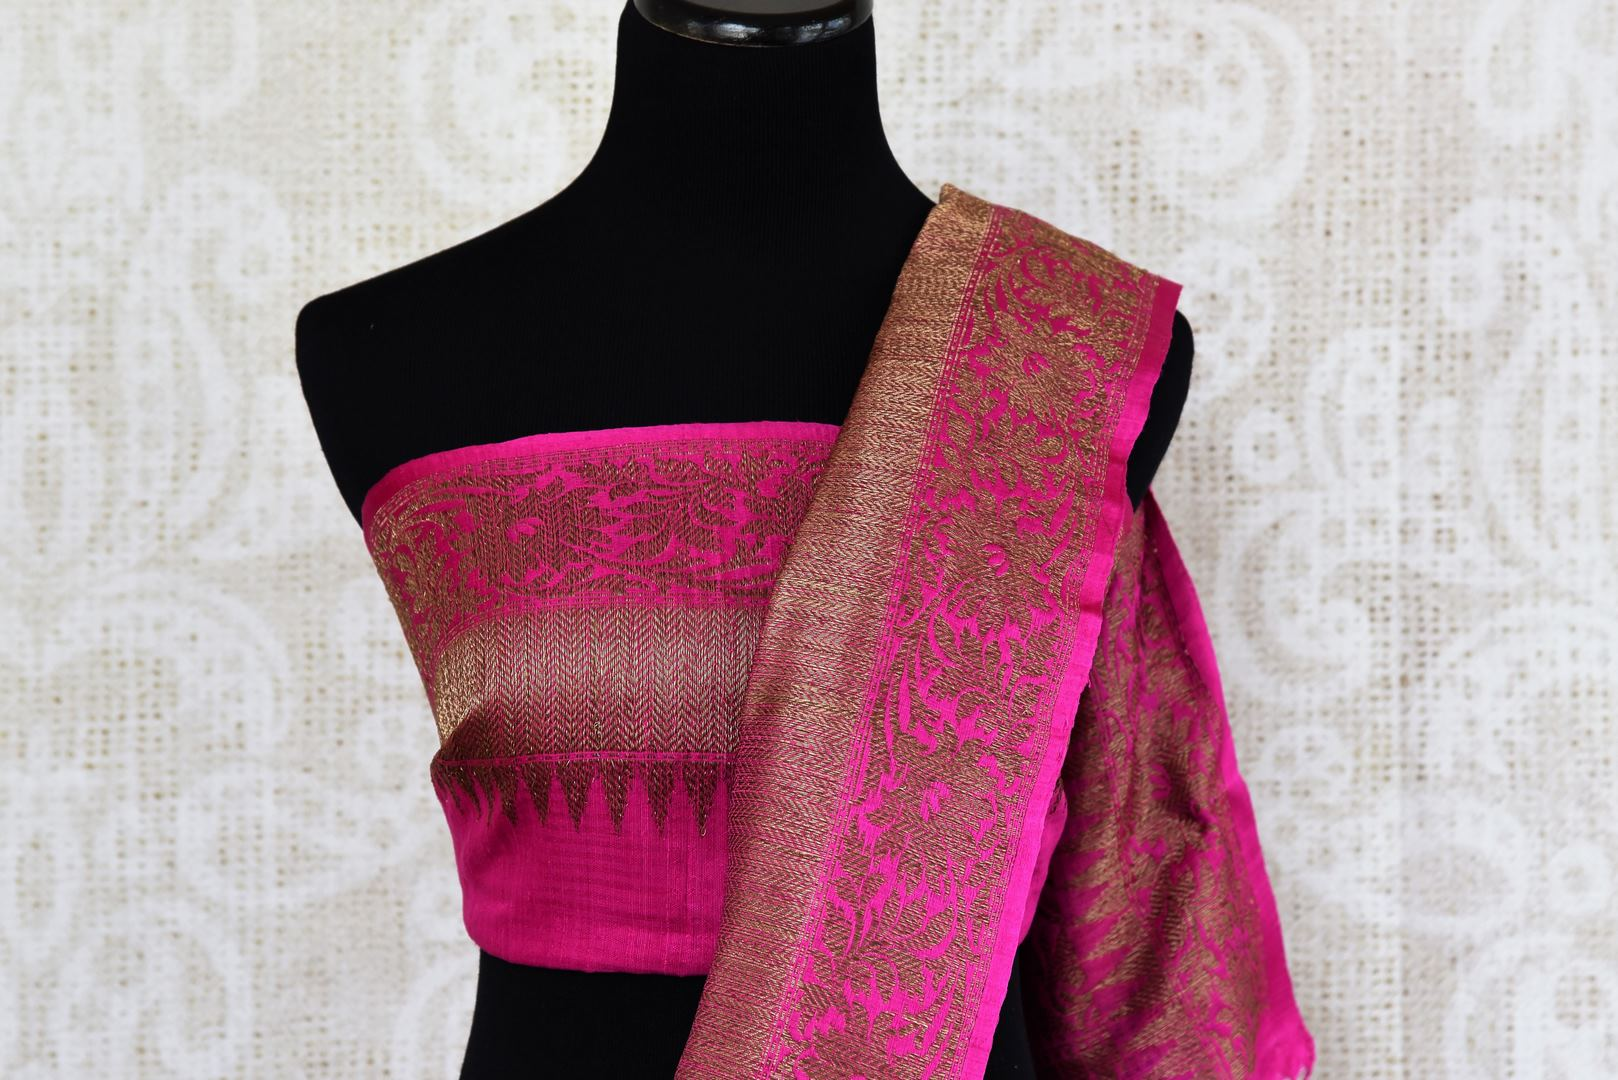 Buy orange tussar katan Banarasi sari online in USA with antique zari border. The saree is a perfect traditional drape for parties and festivals. Spoil yourself with an exquisite collection of Indian Banarasi sarees in USA available at Pure Elegance Indian clothing store. -blouse pallu